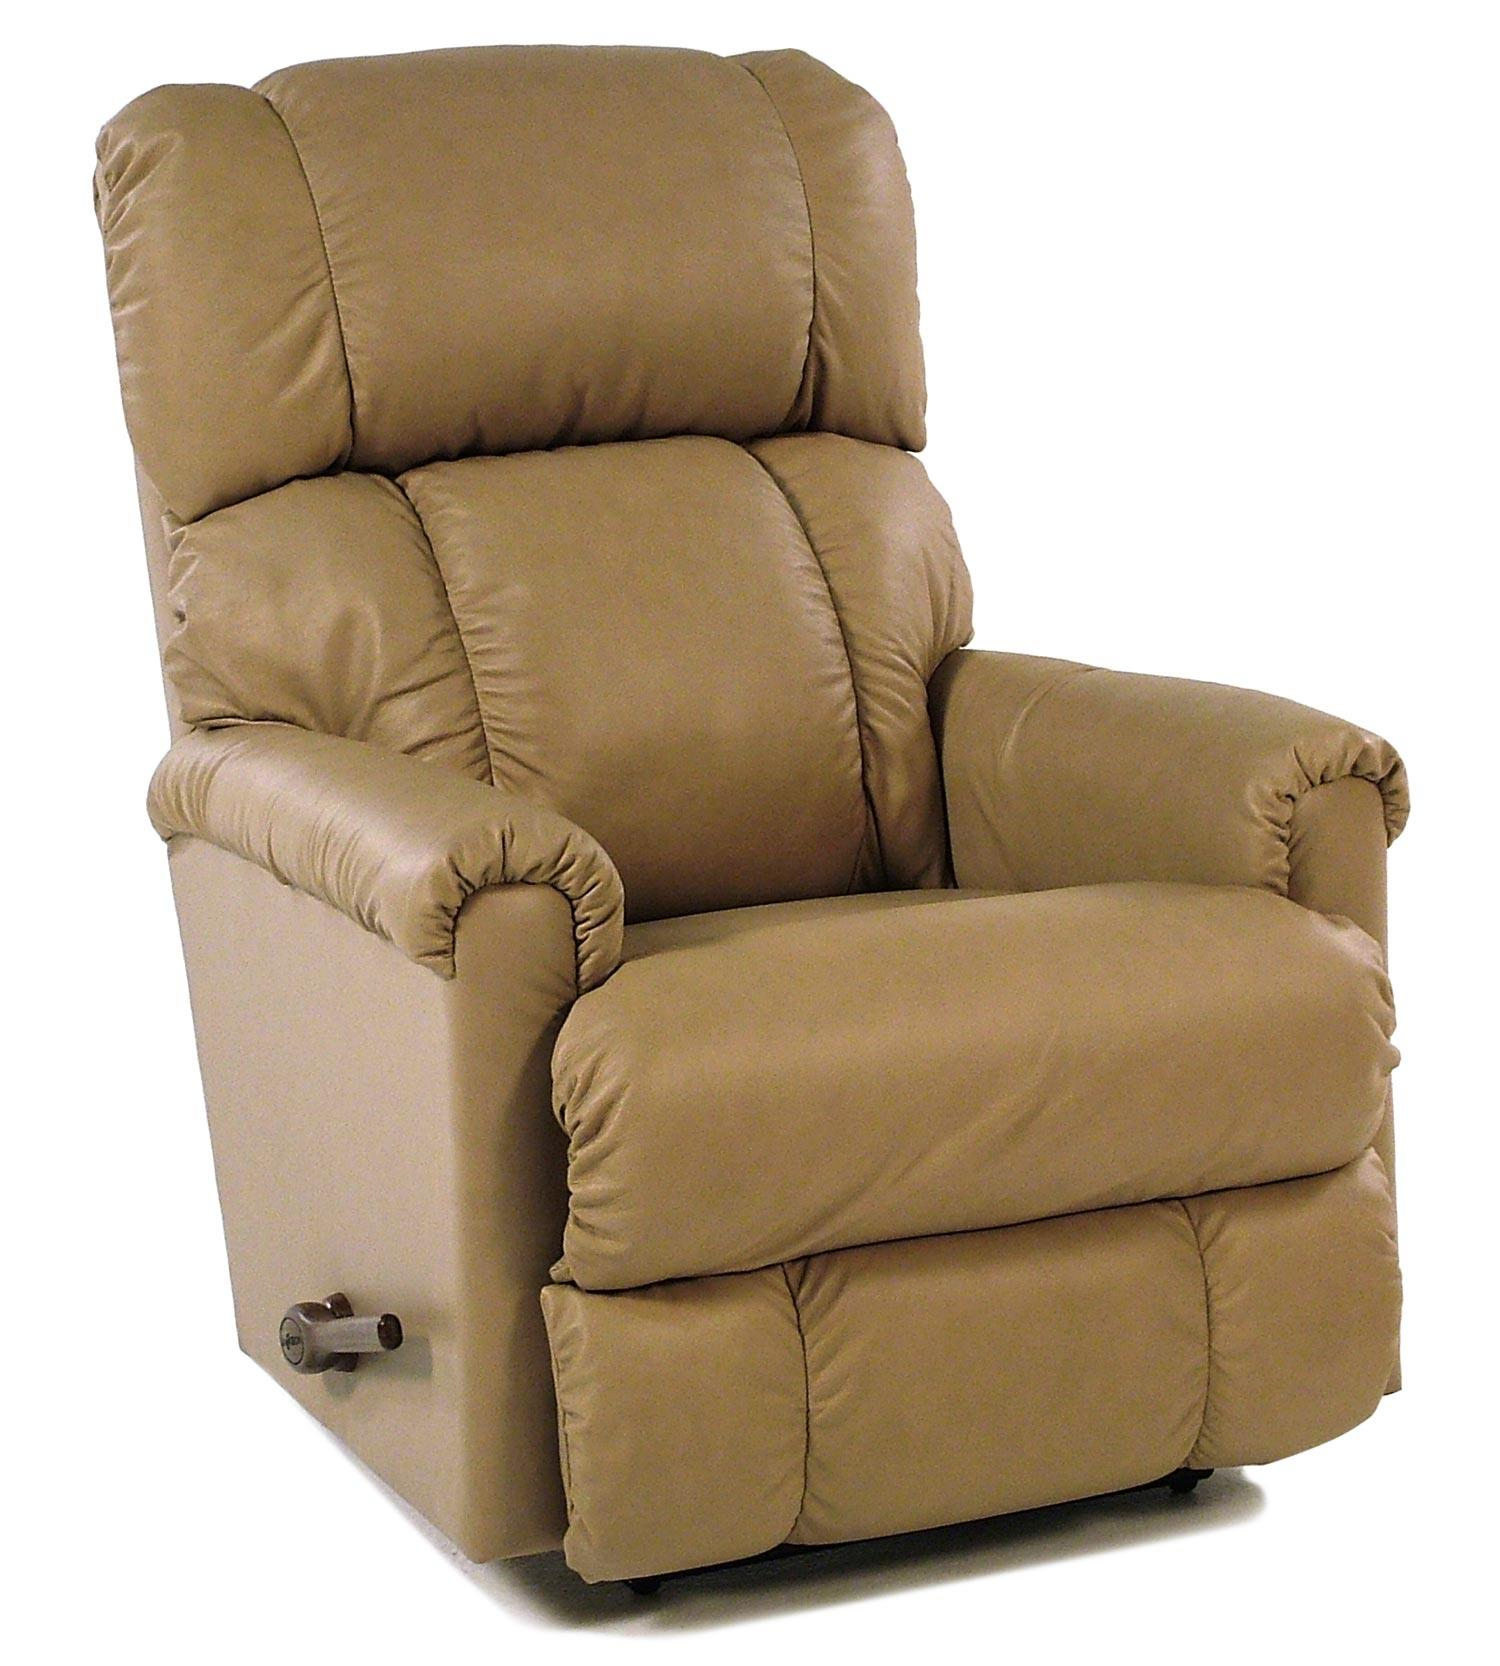 La-Z-Boy Pinnacle Reclina-Way® Recliner - Item Number 016512  sc 1 st  Rotmans & La-Z-Boy Pinnacle Reclina-Way® Reclining Chair - Rotmans - Three ... islam-shia.org